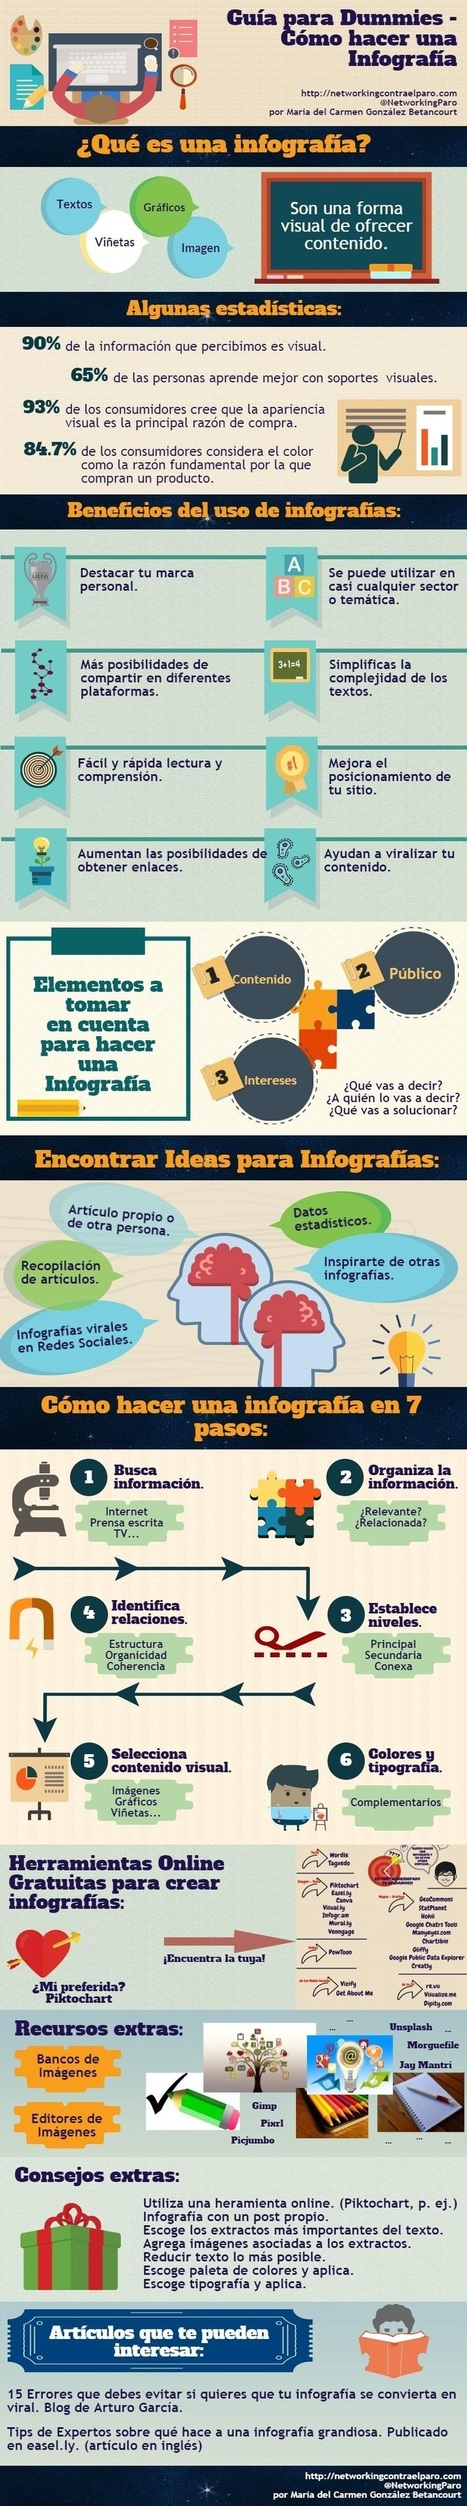 Guía para dummies sobre cómo crear infografías | INTELIGENCIA GLOBAL | Scoop.it